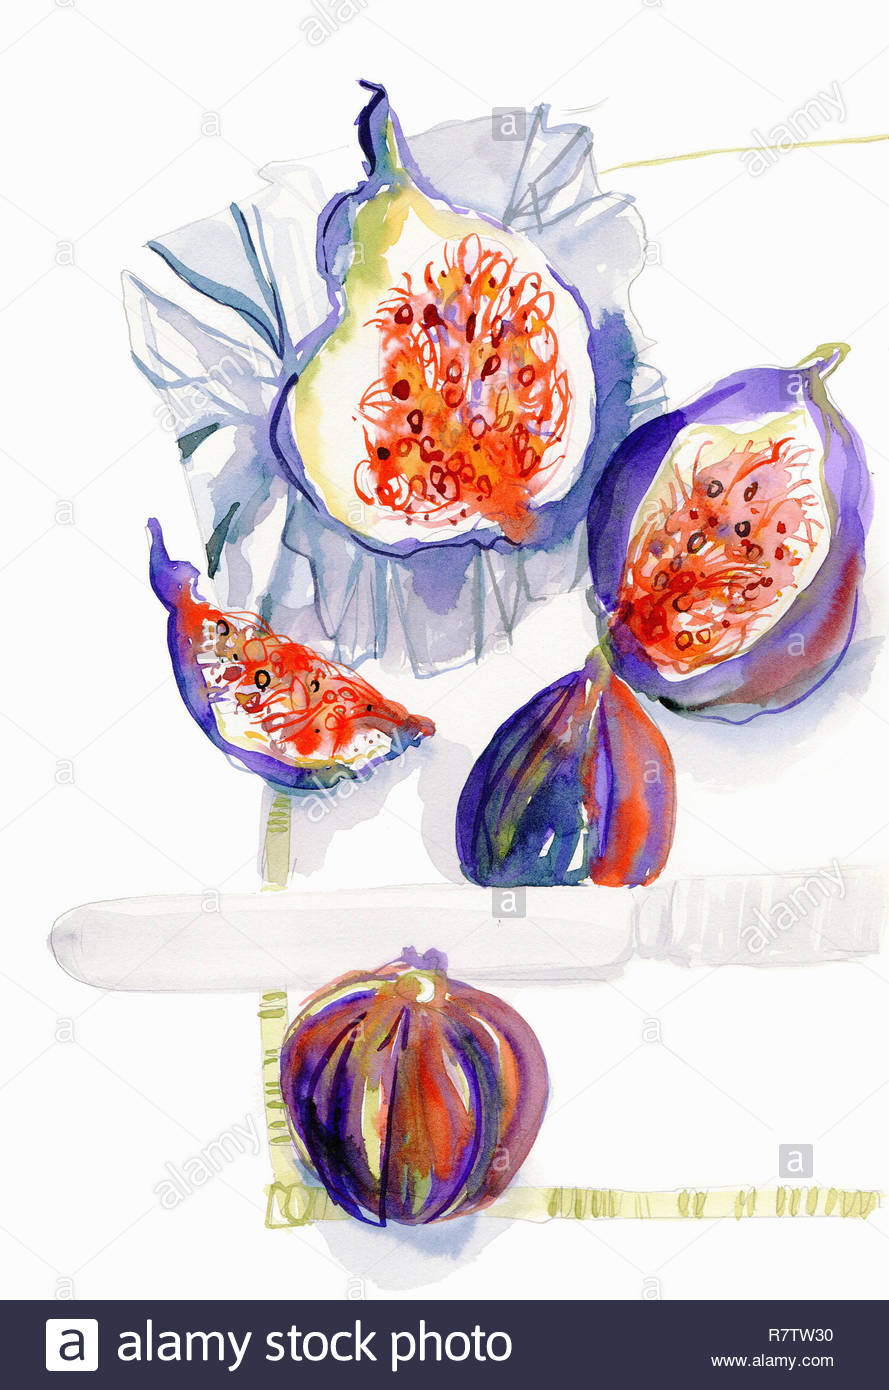 Watercolor painting of whole and halved fresh figs Stock Photo